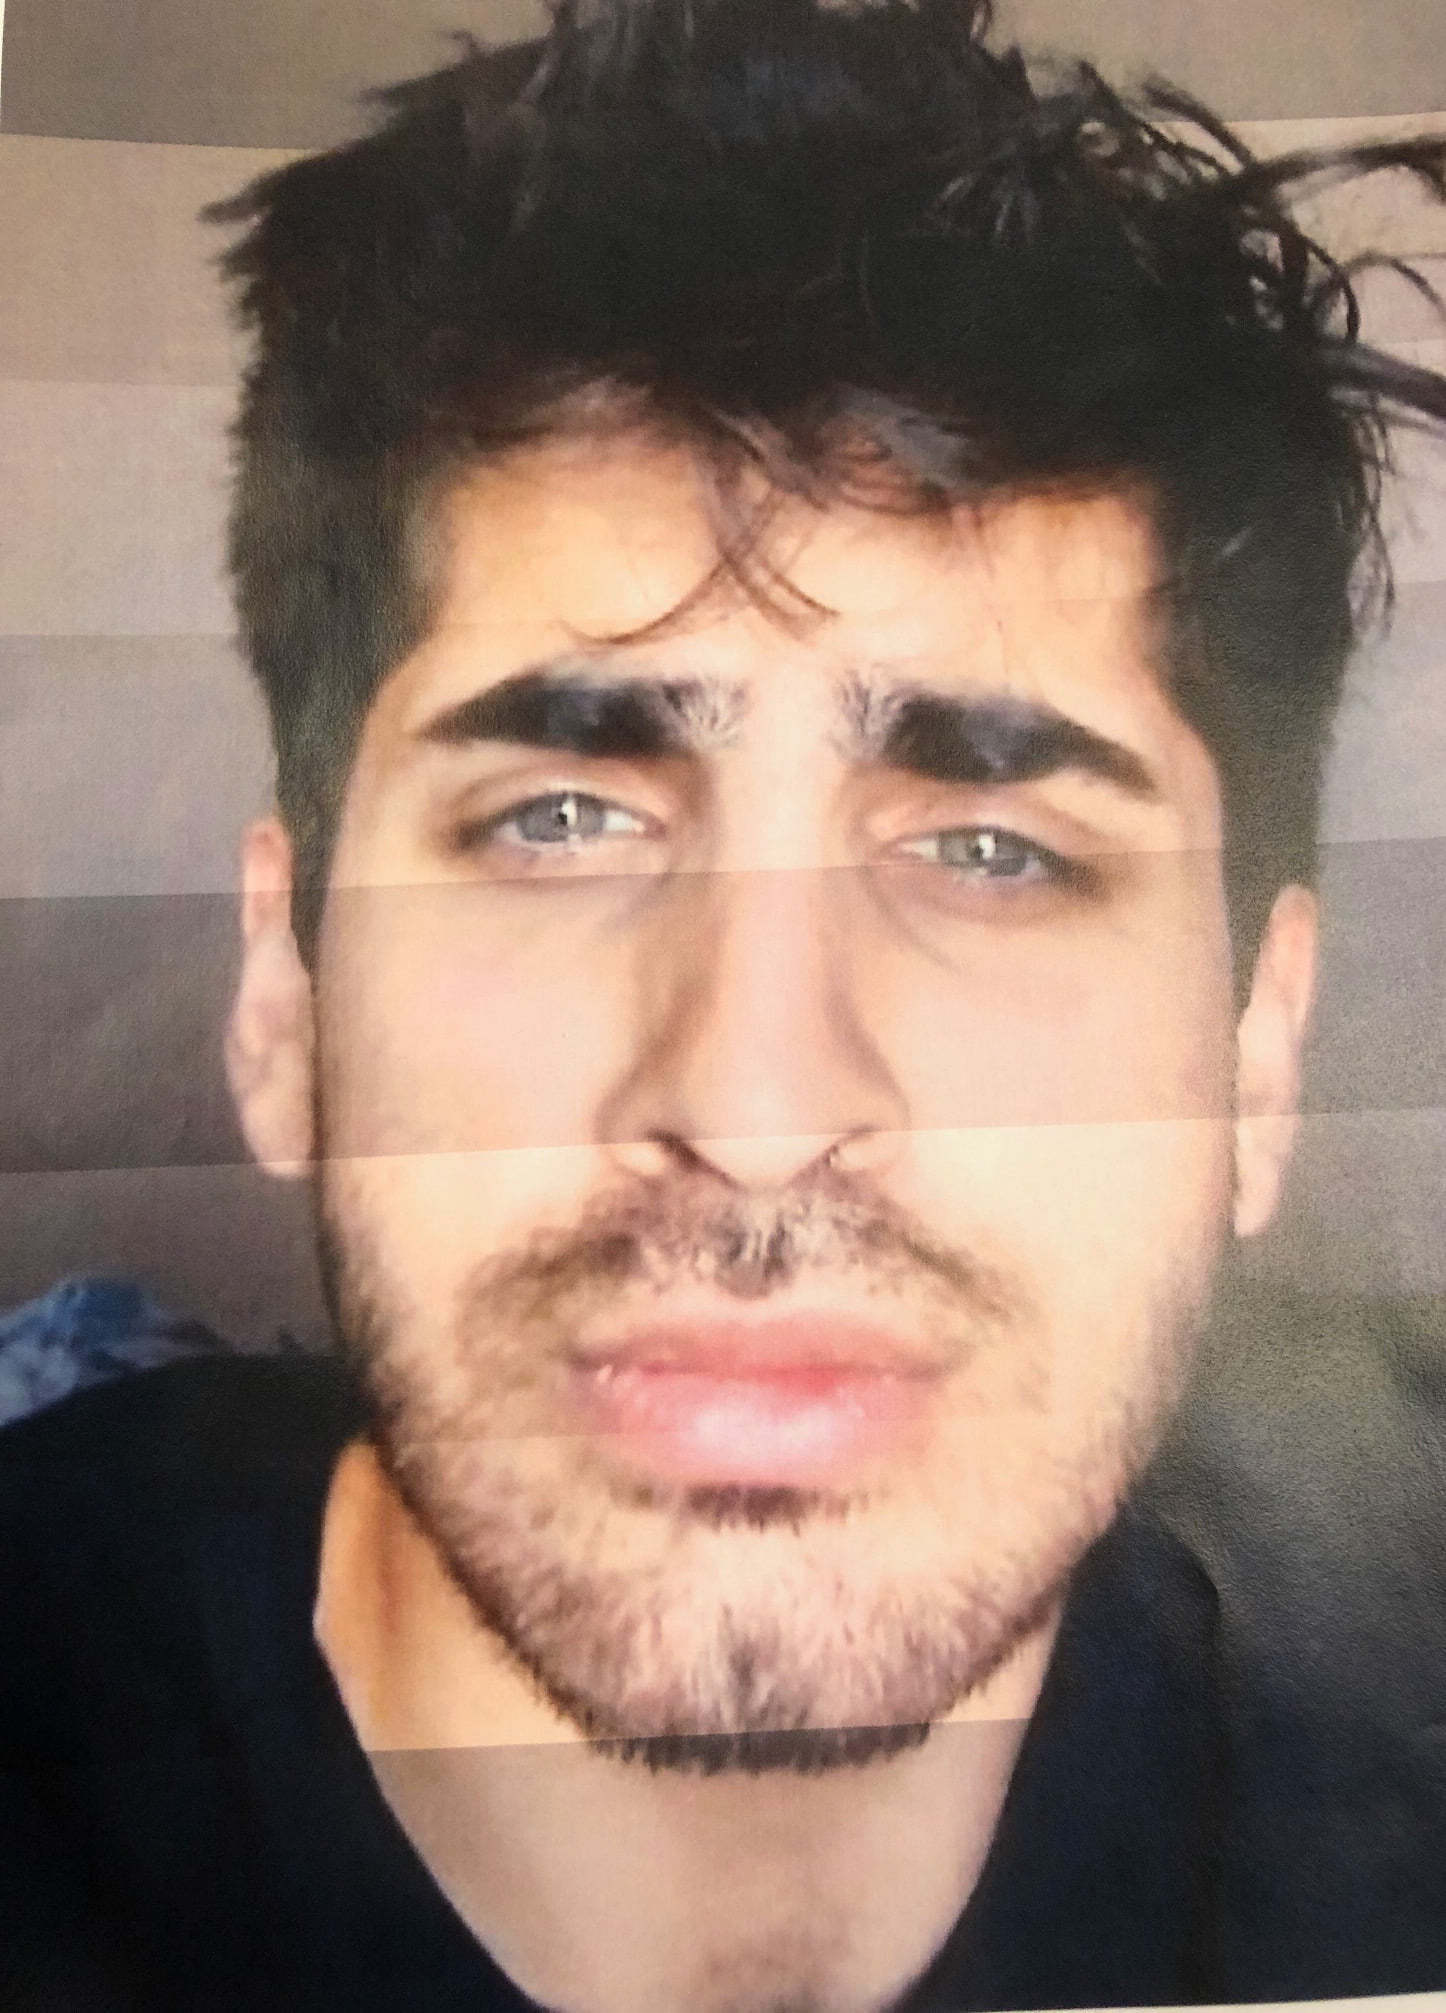 Police searching for missing 23-year-old man from Brampton